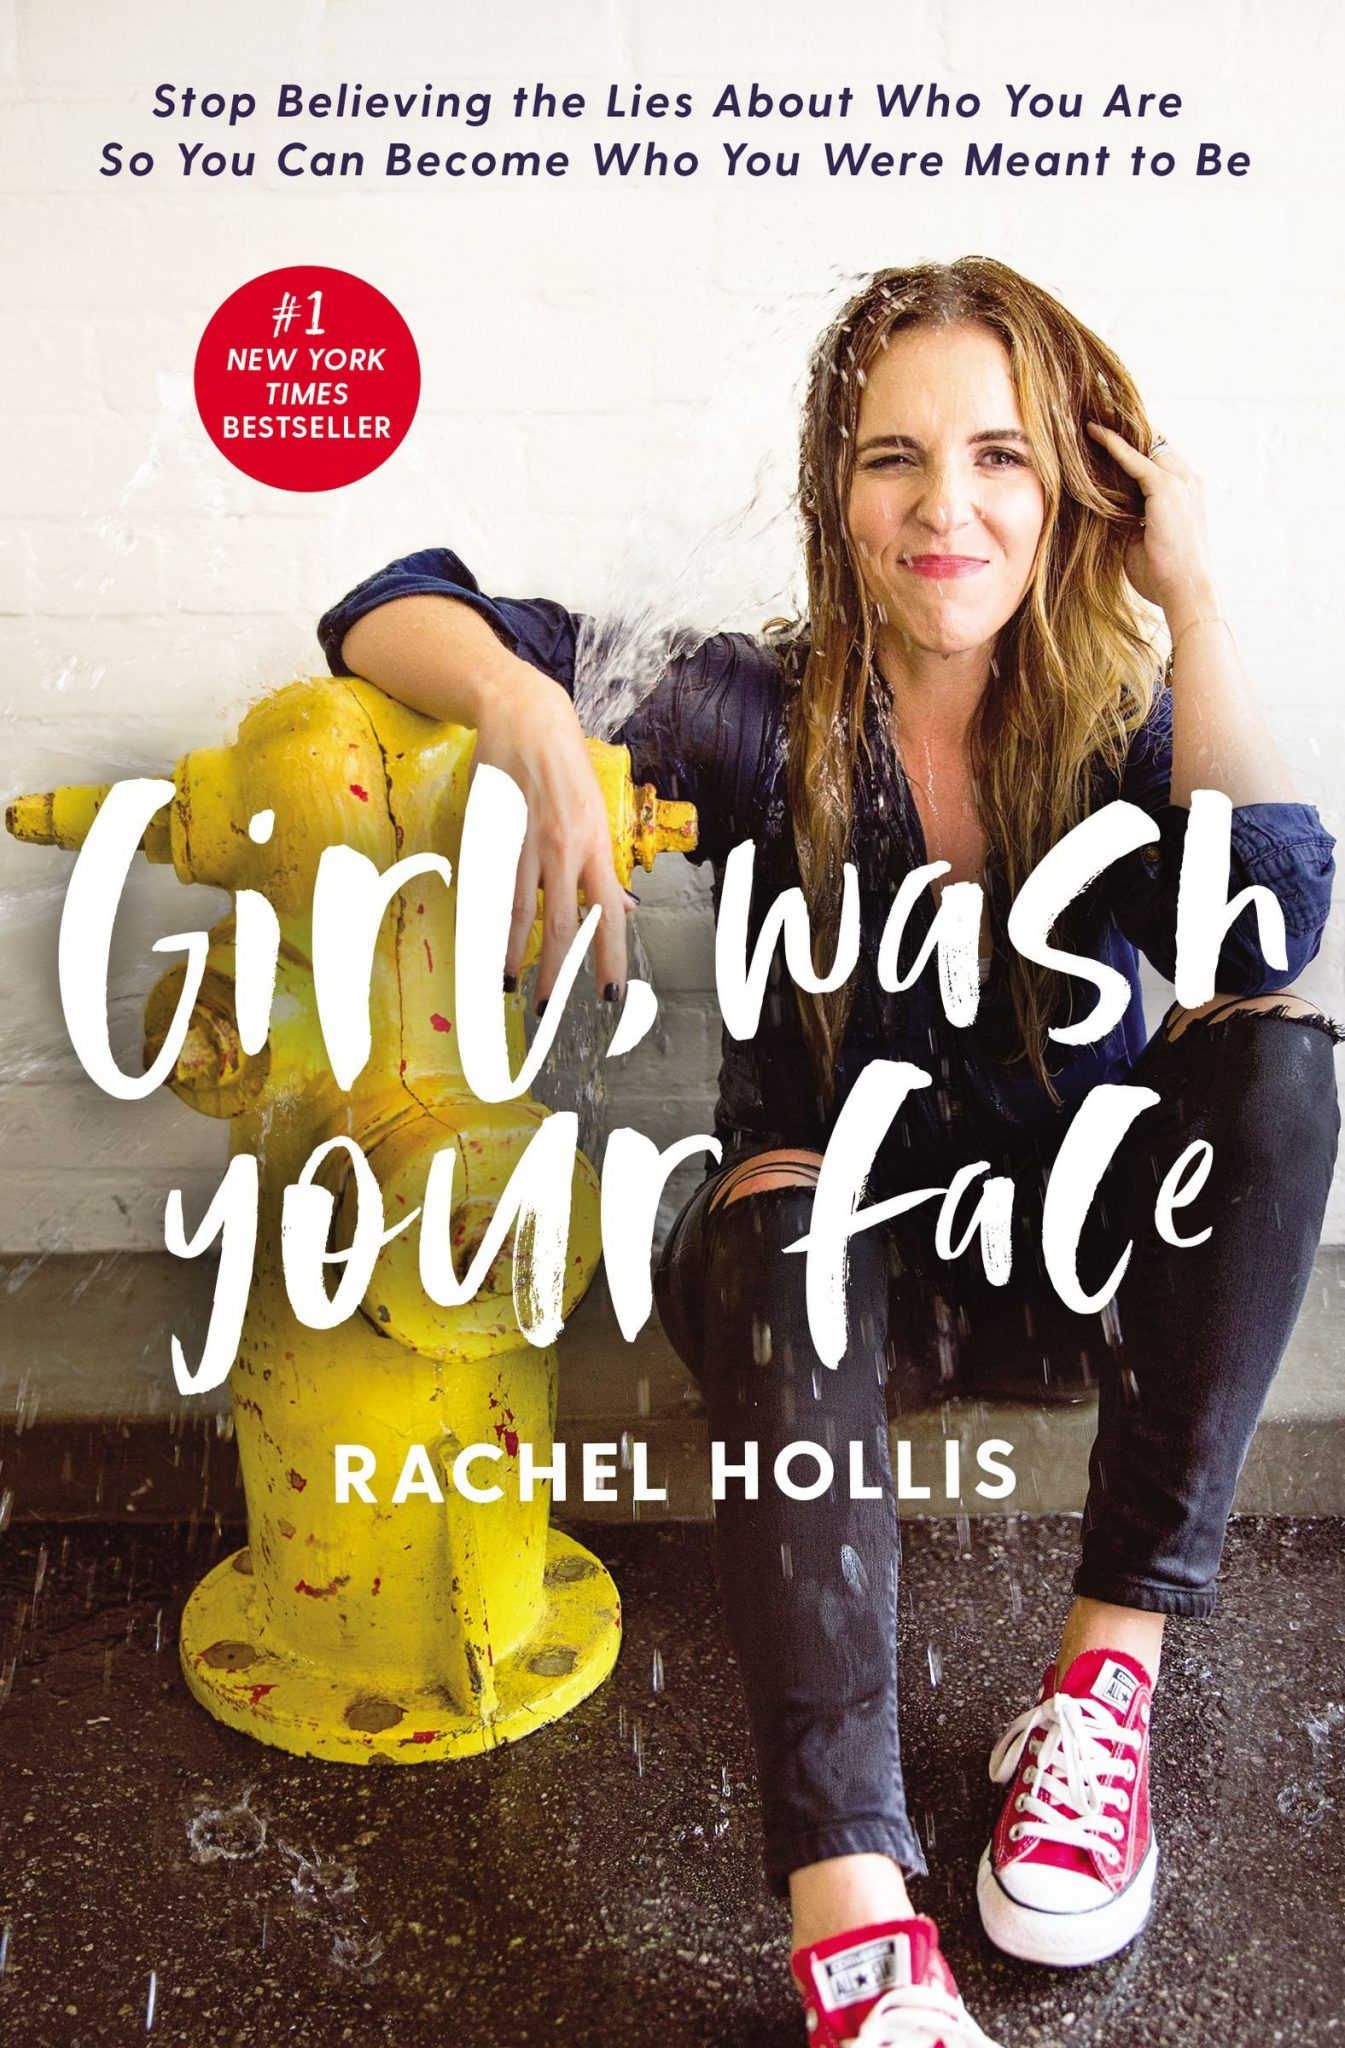 f2c9a979b895 What Rachel Hollis Gets Right and Wrong